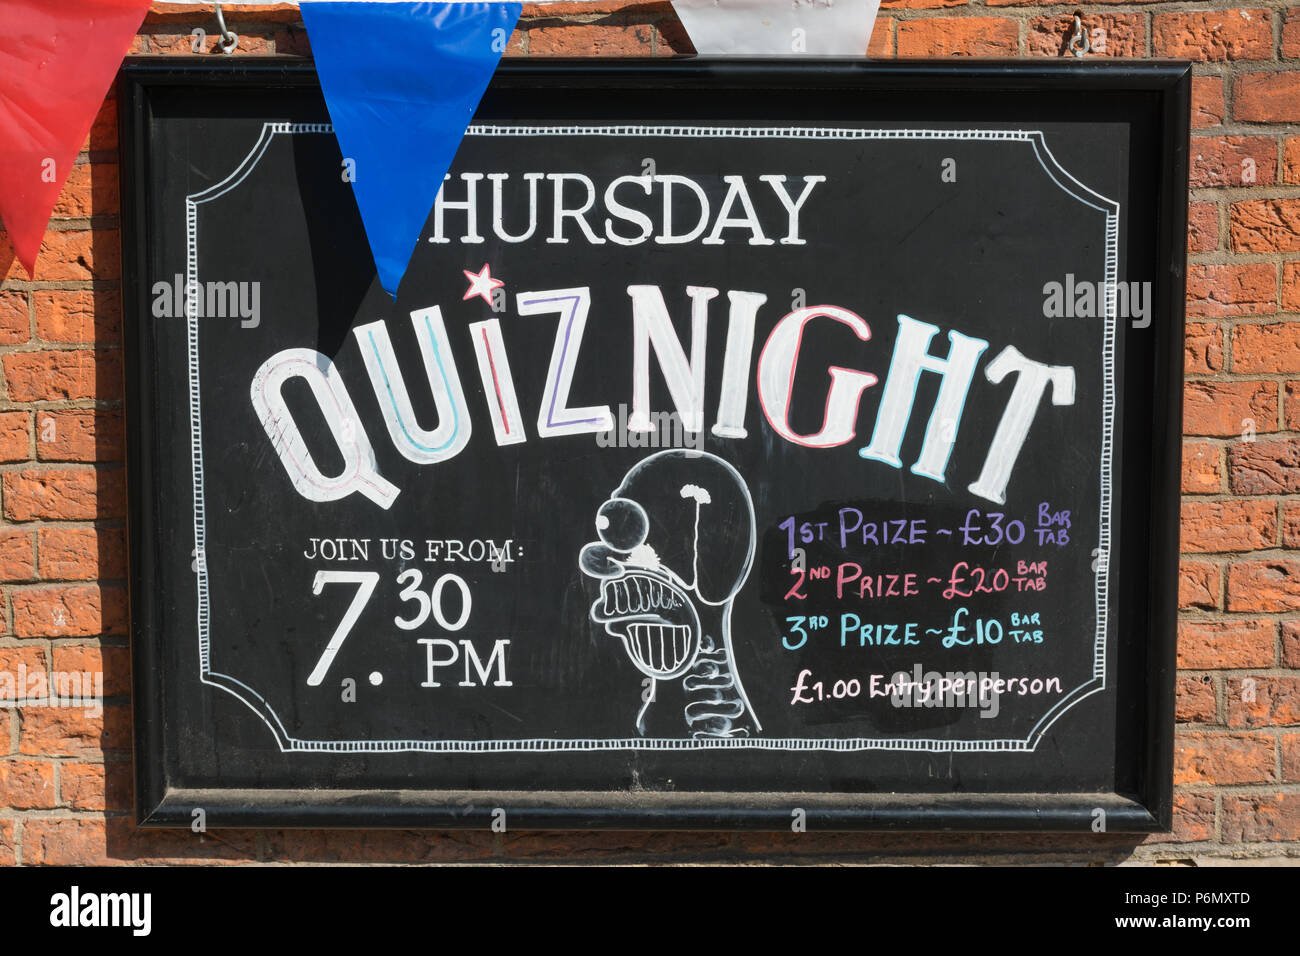 notice-giving-information-about-a-weekly-thursday-quiz-night-on-the-exterior-of-a-pub-in-guildford-surrey-uk-P6MXTD.jpg